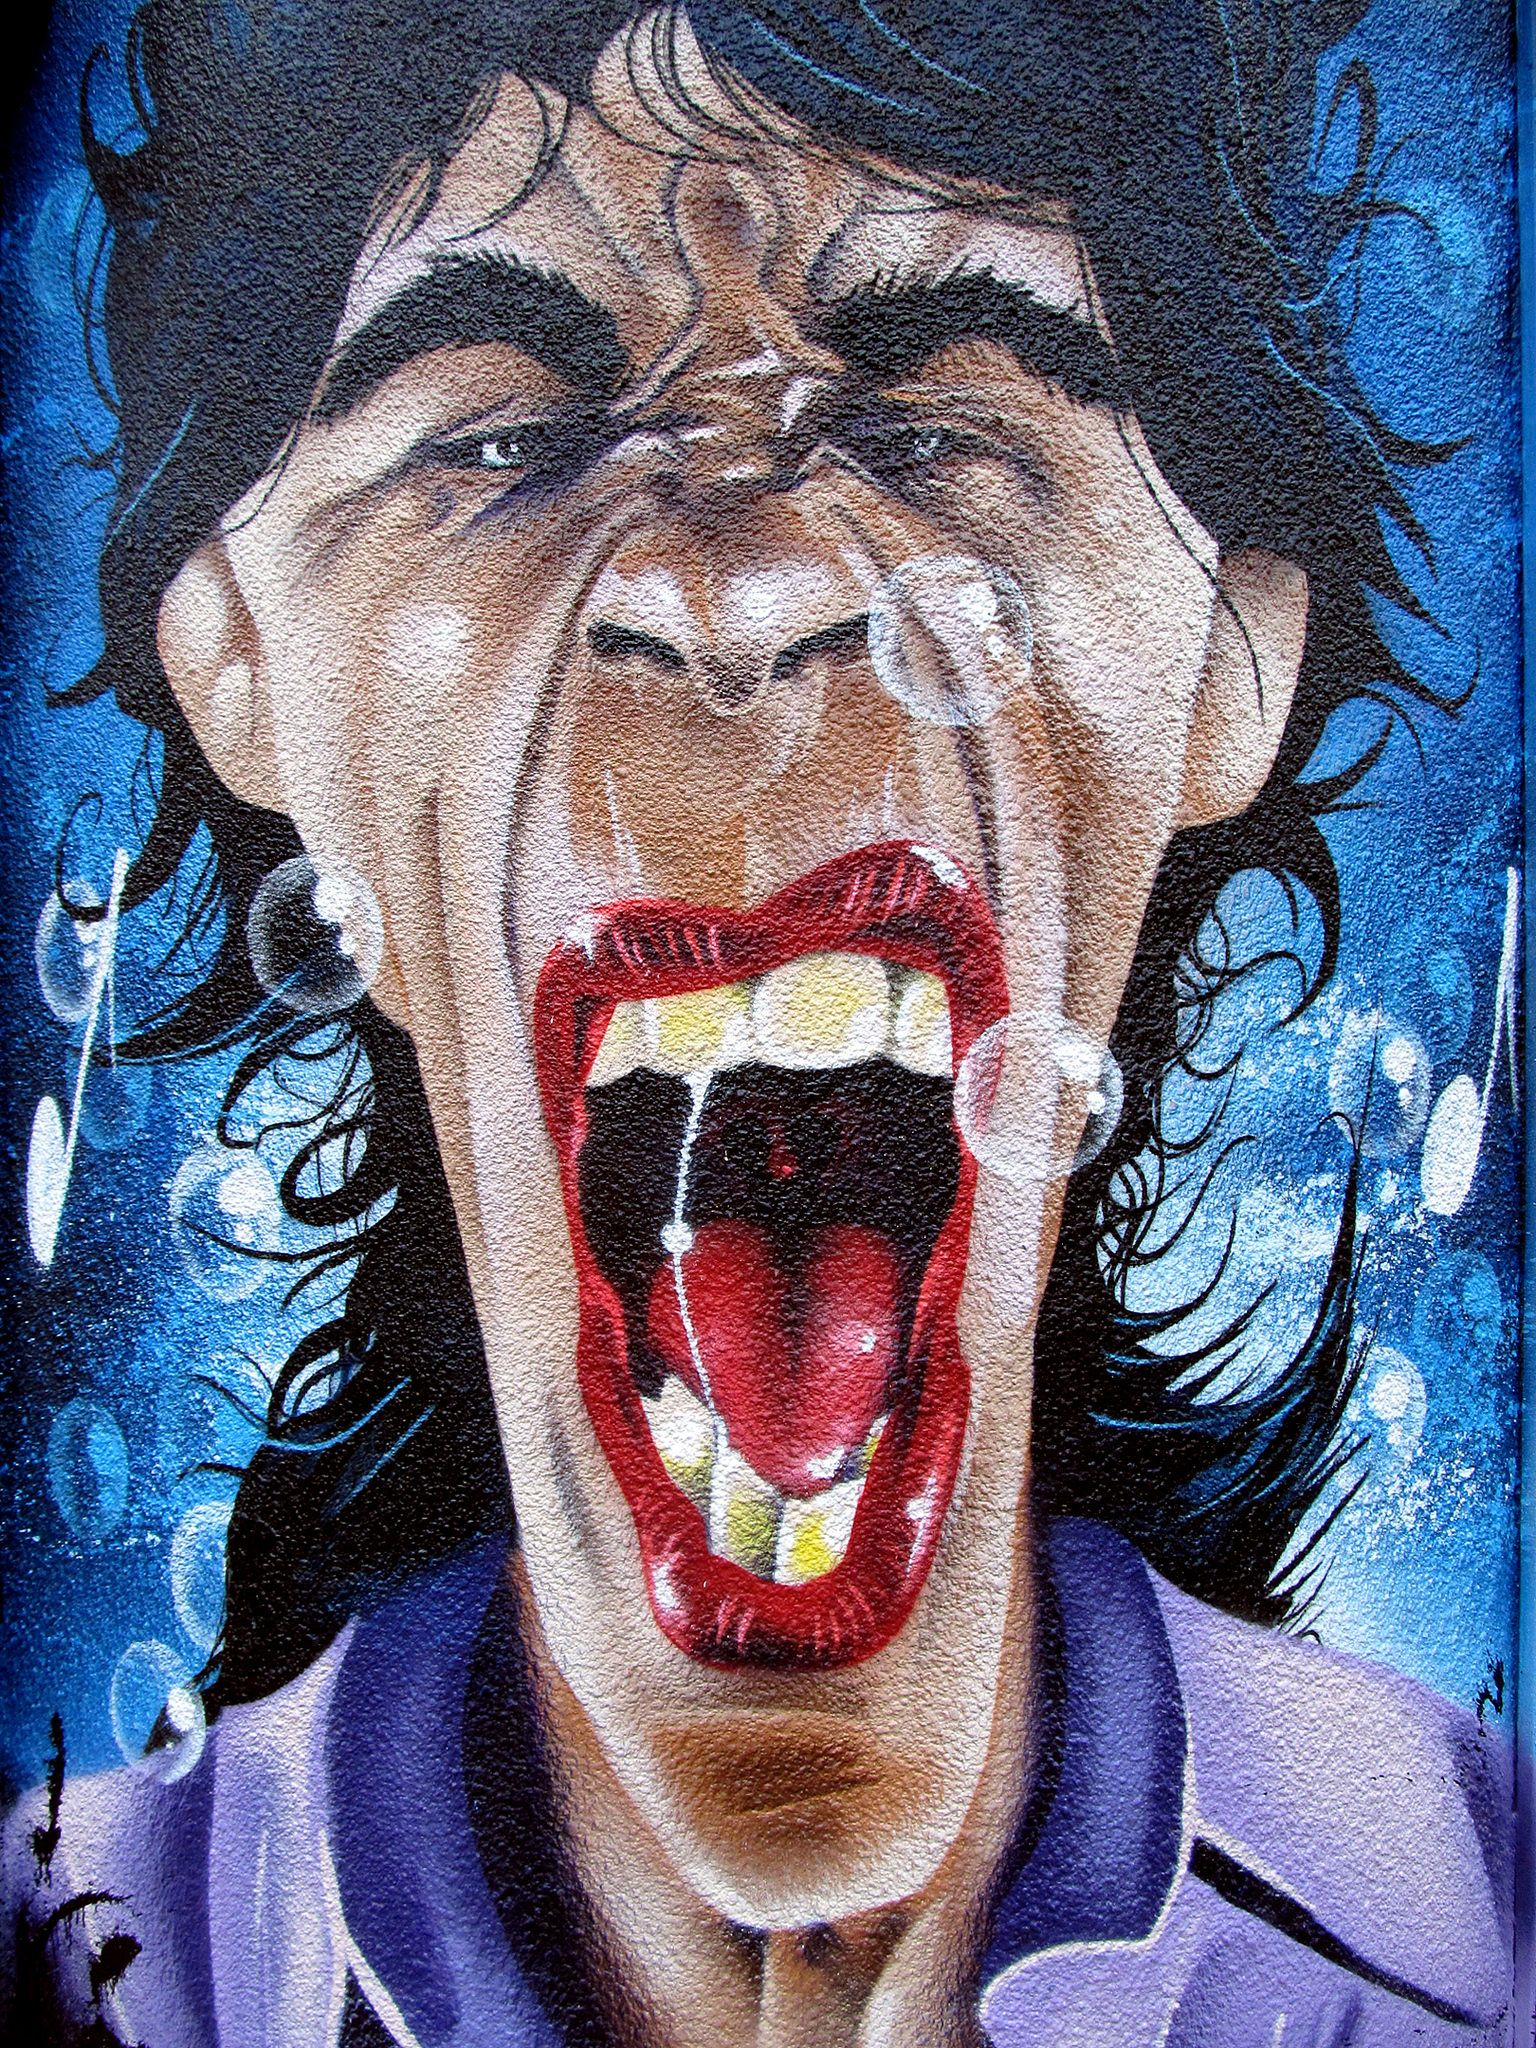 https://flic.kr/p/pAHqdG | Seven Faces by Trik9 - Mick Jagger. | With vivid colours and Anime style characters Sheffield street artist Trik9's work is distinctive. Here are seven of my favourite faces from his artworks around the city.